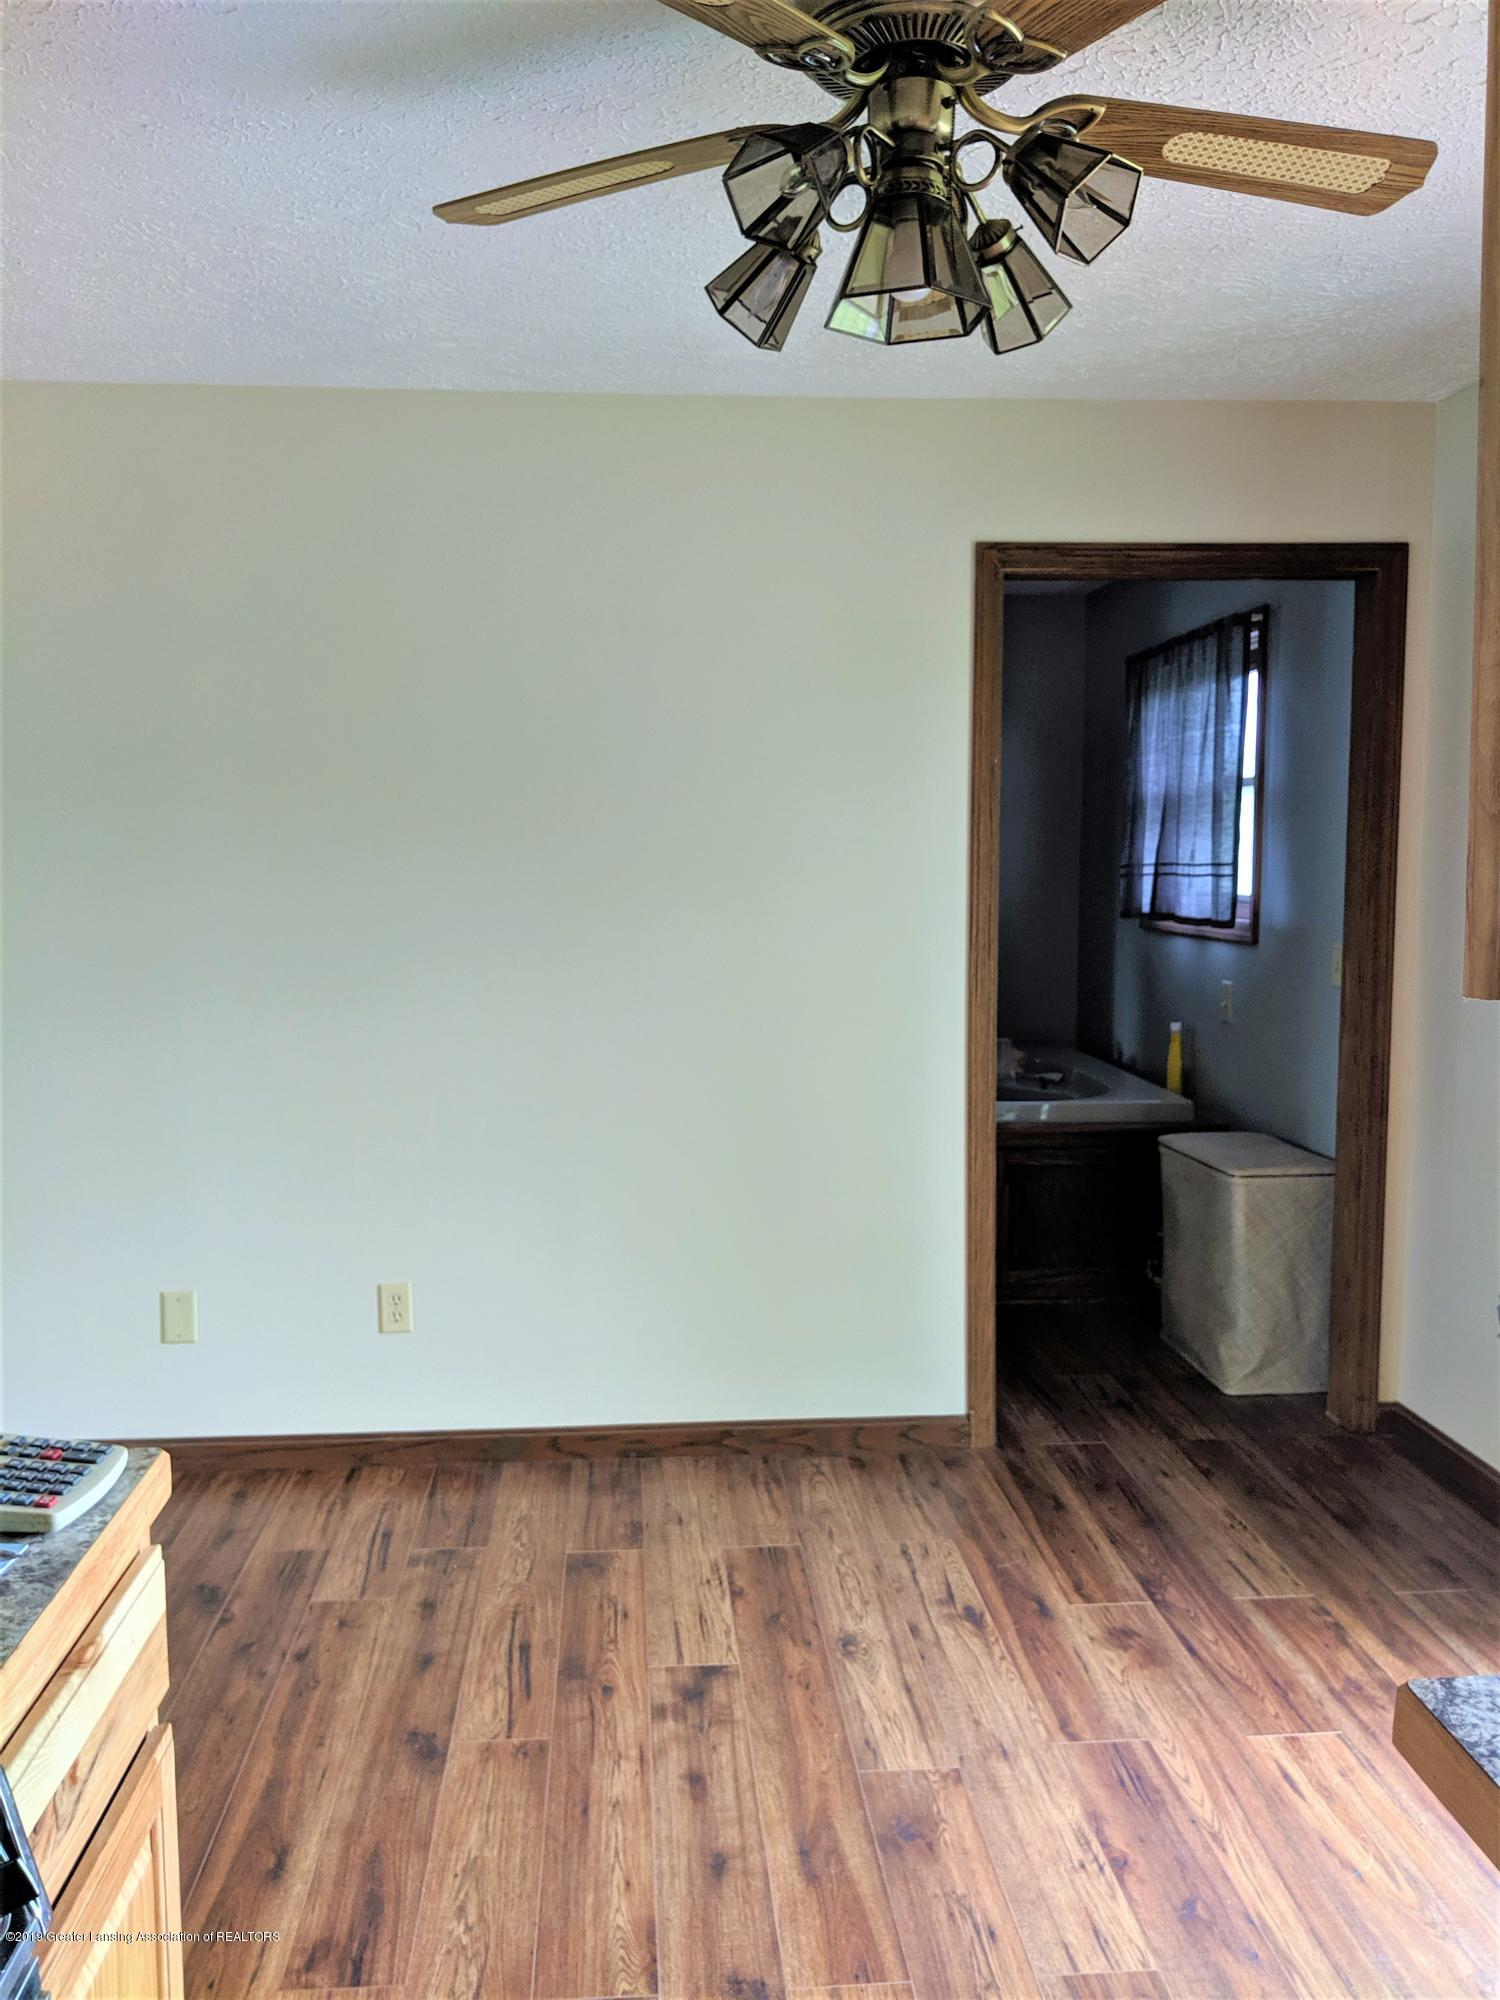 6111 S Morrice Rd - kt to dining room - 16